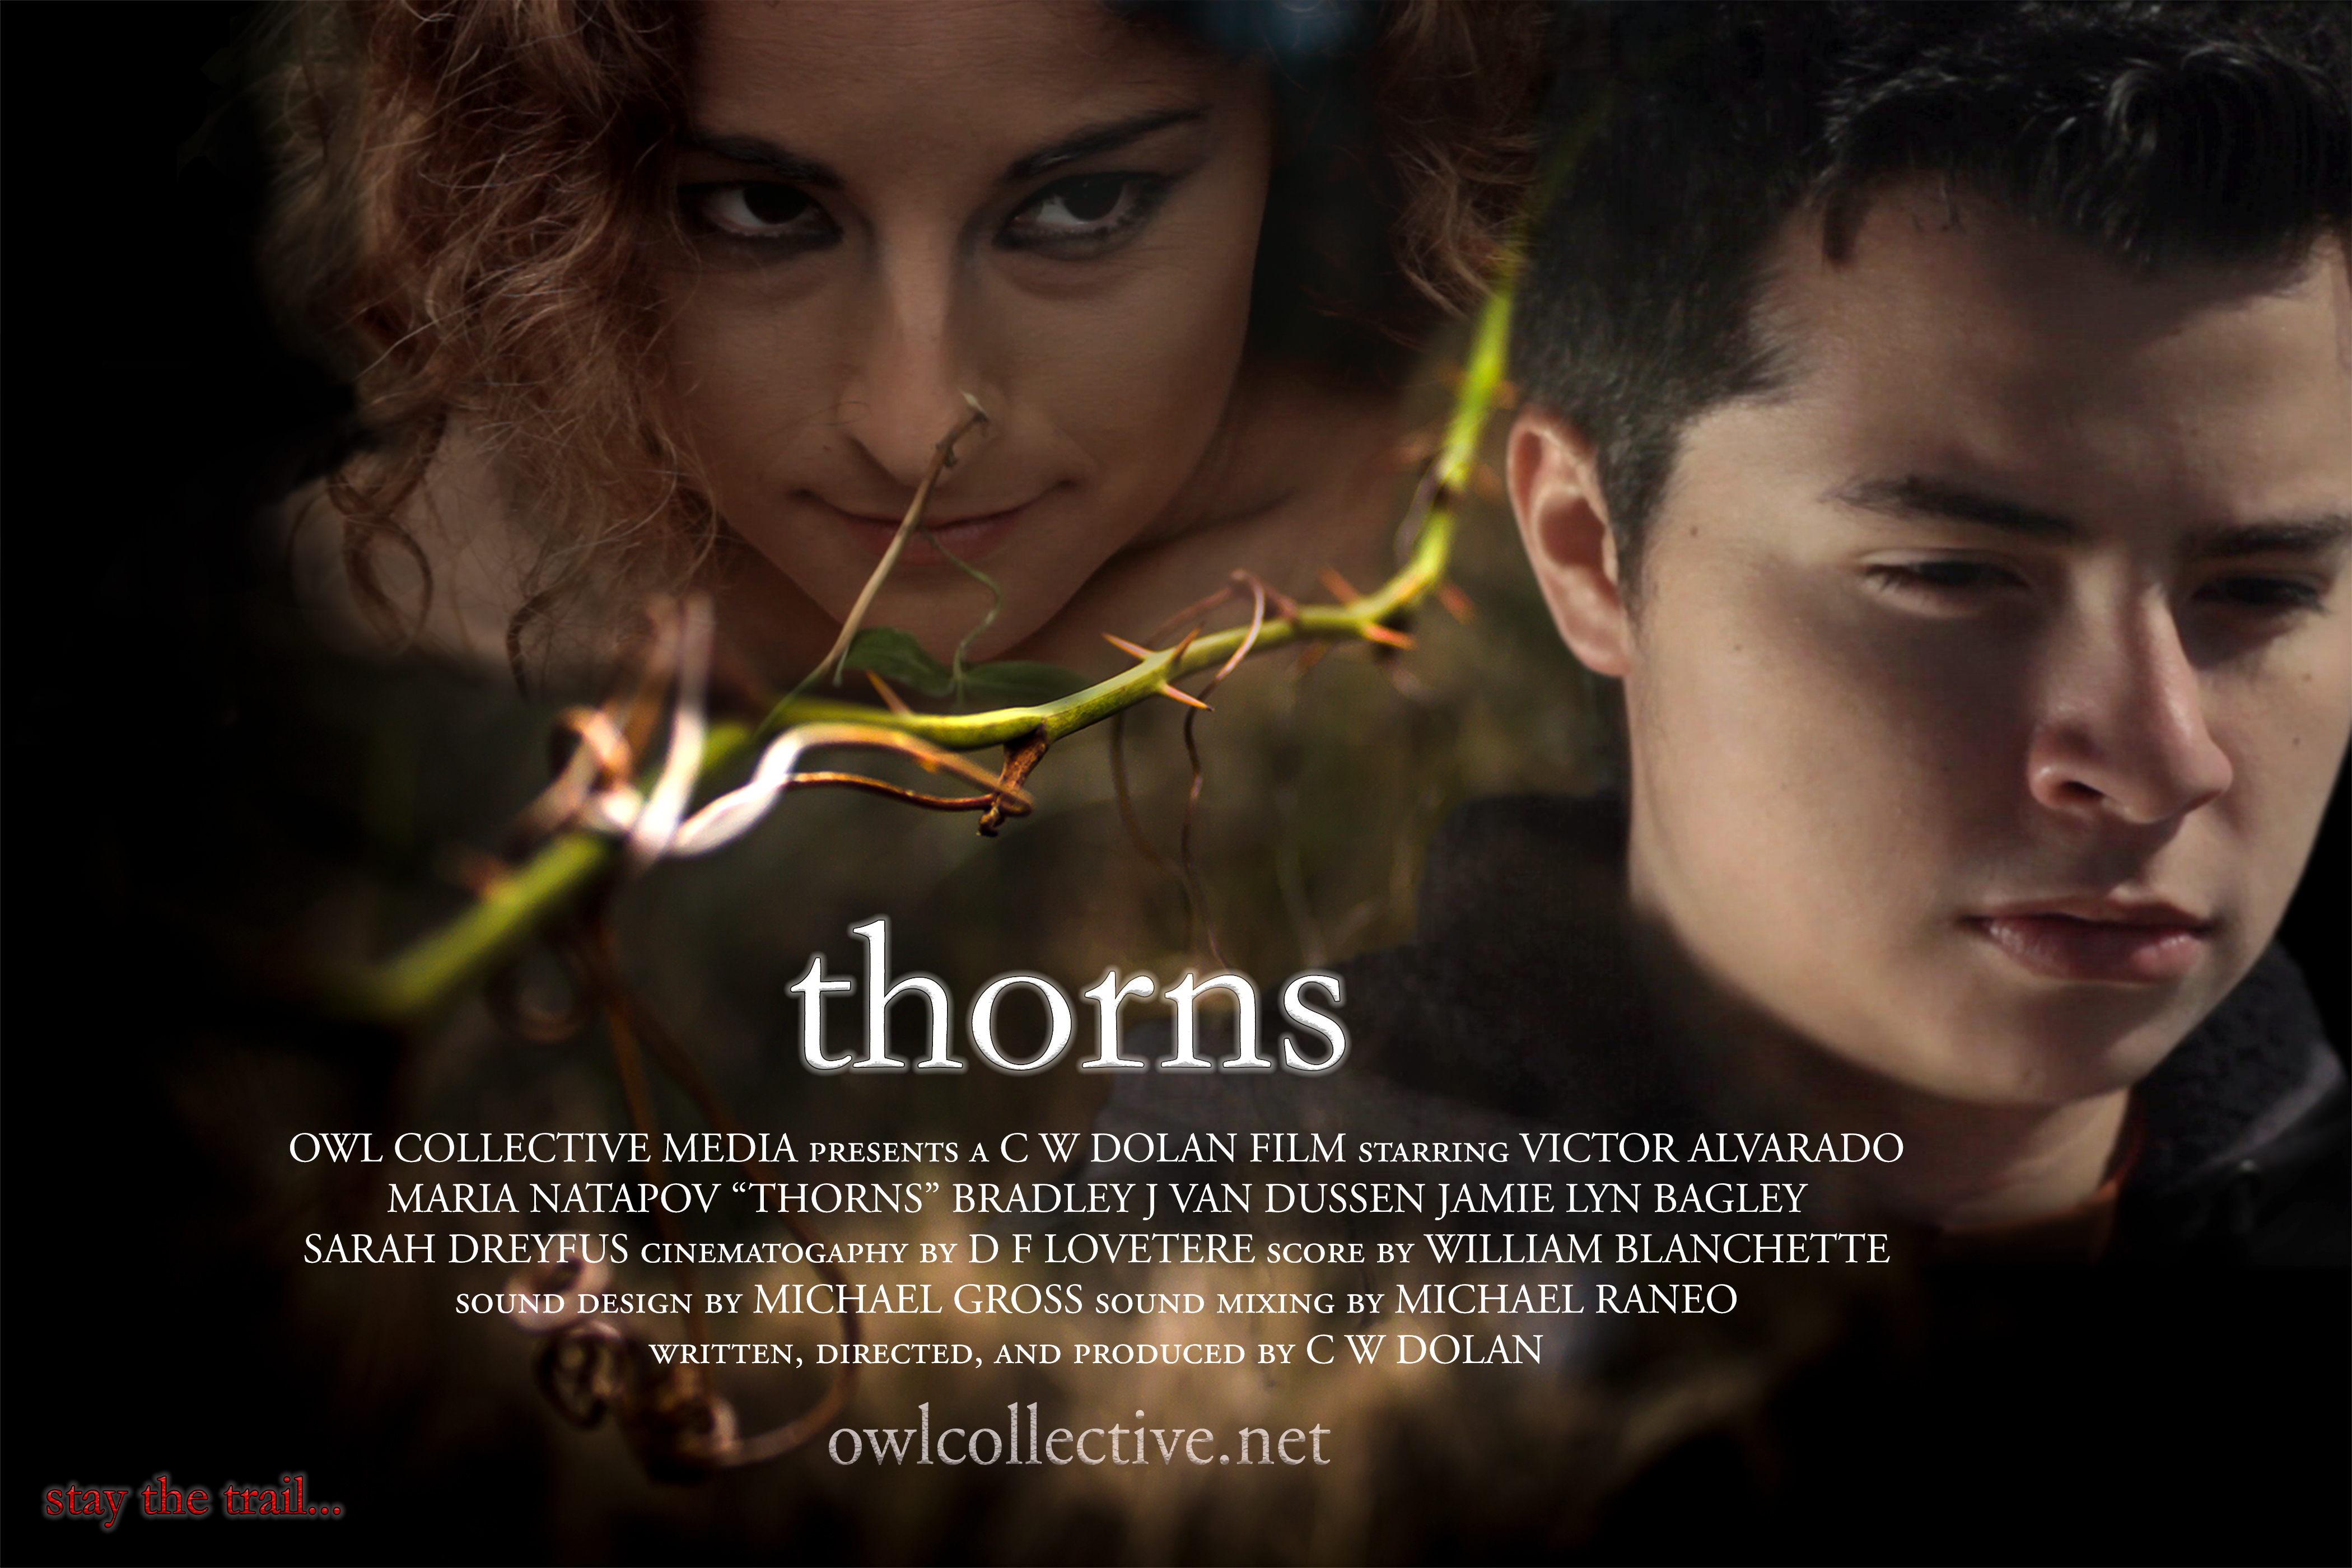 THORNS FILM POSTER WITH CREDITS